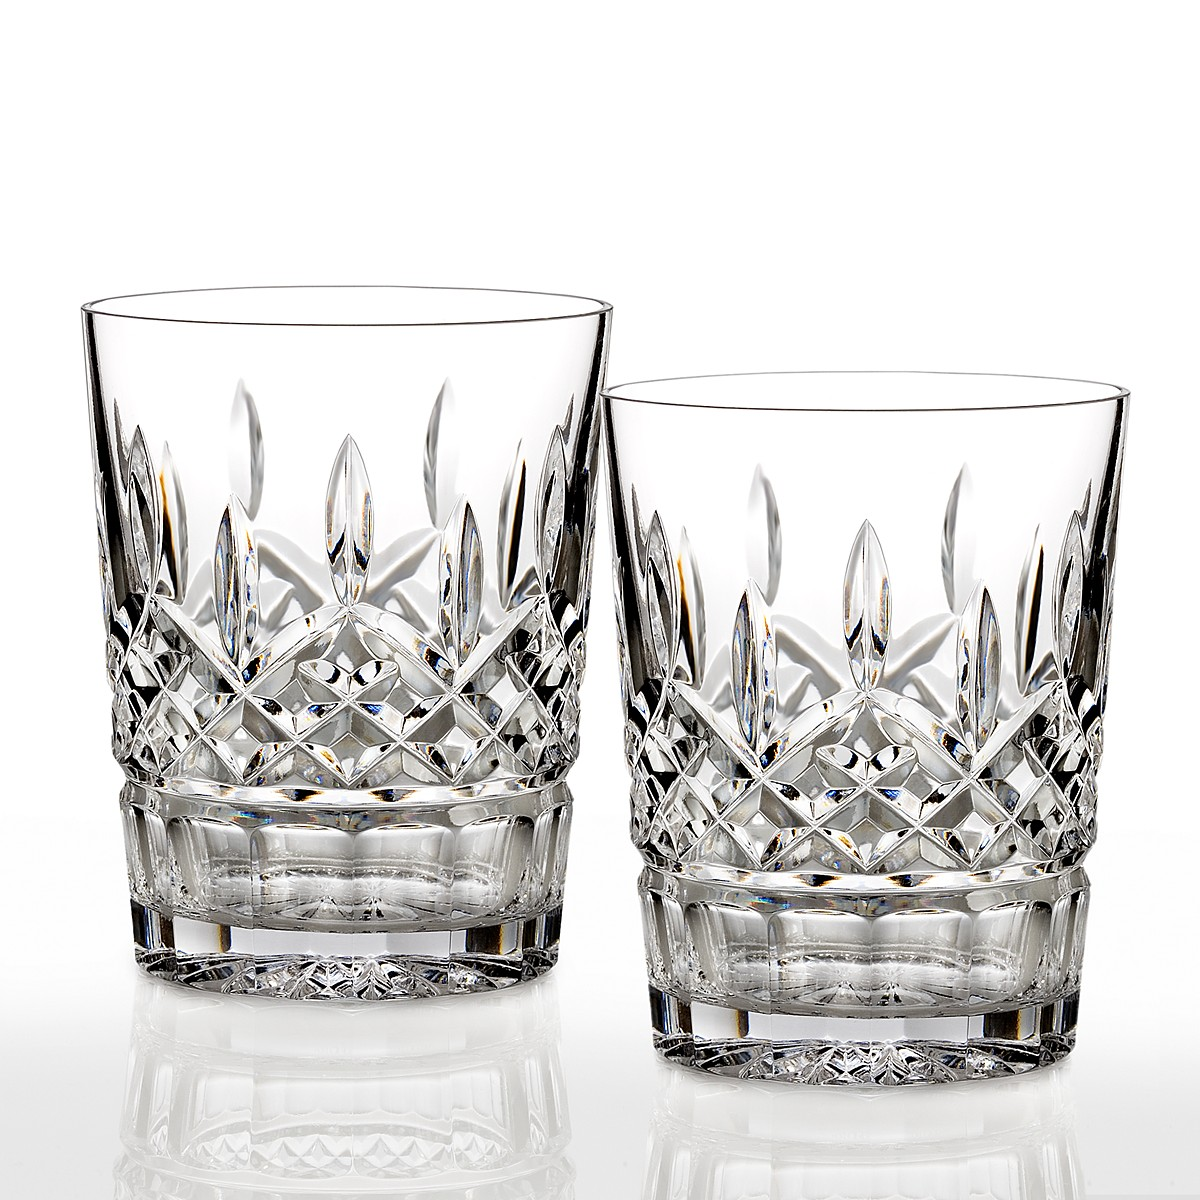 Beautiful waterford lismore with lismore goblet design glass waterford lismore